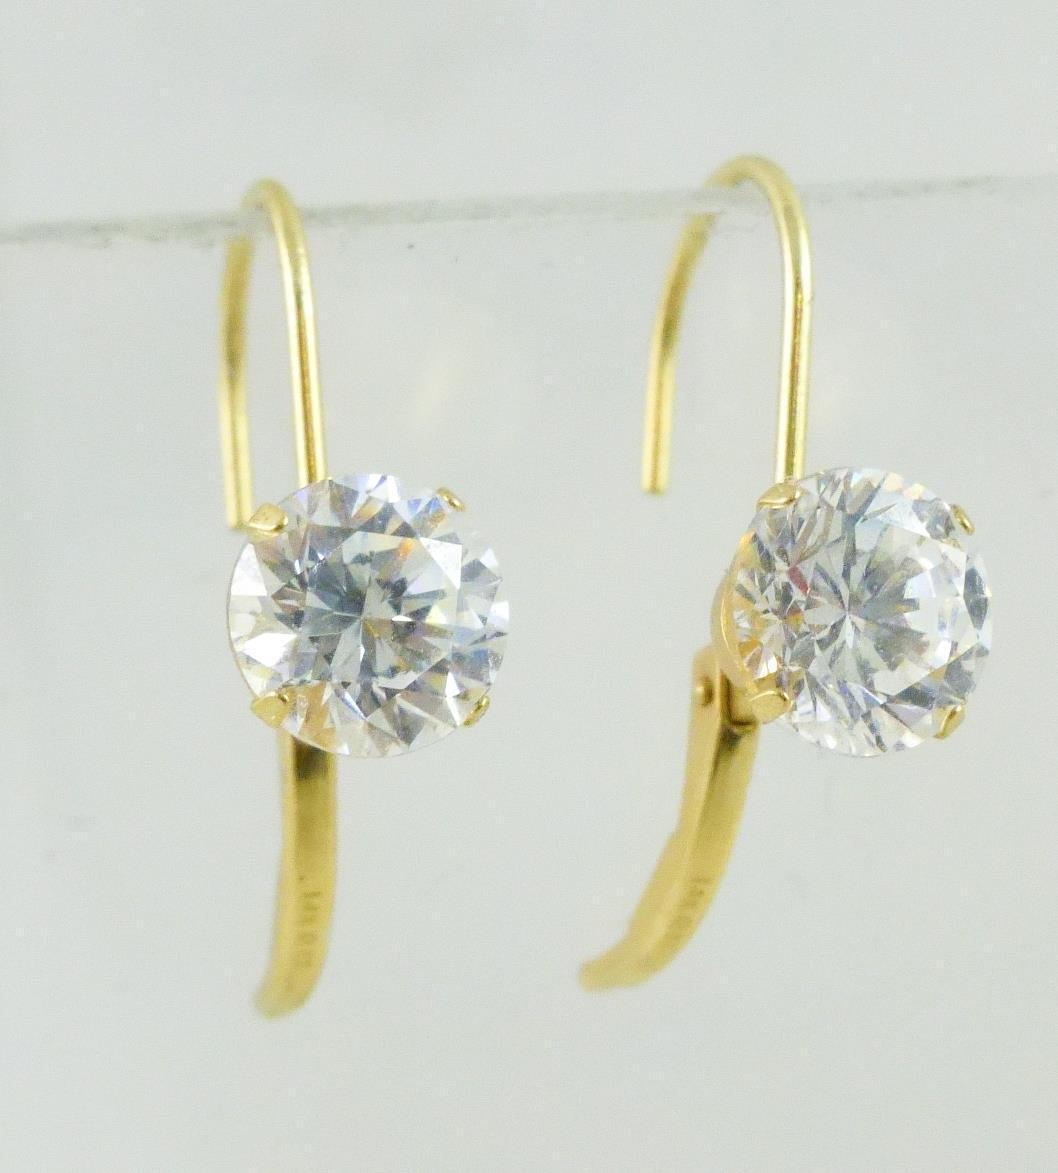 14K Yellow GOLD Round cut Cubic Zirconia lever back EARRINGS - 1.8 grams